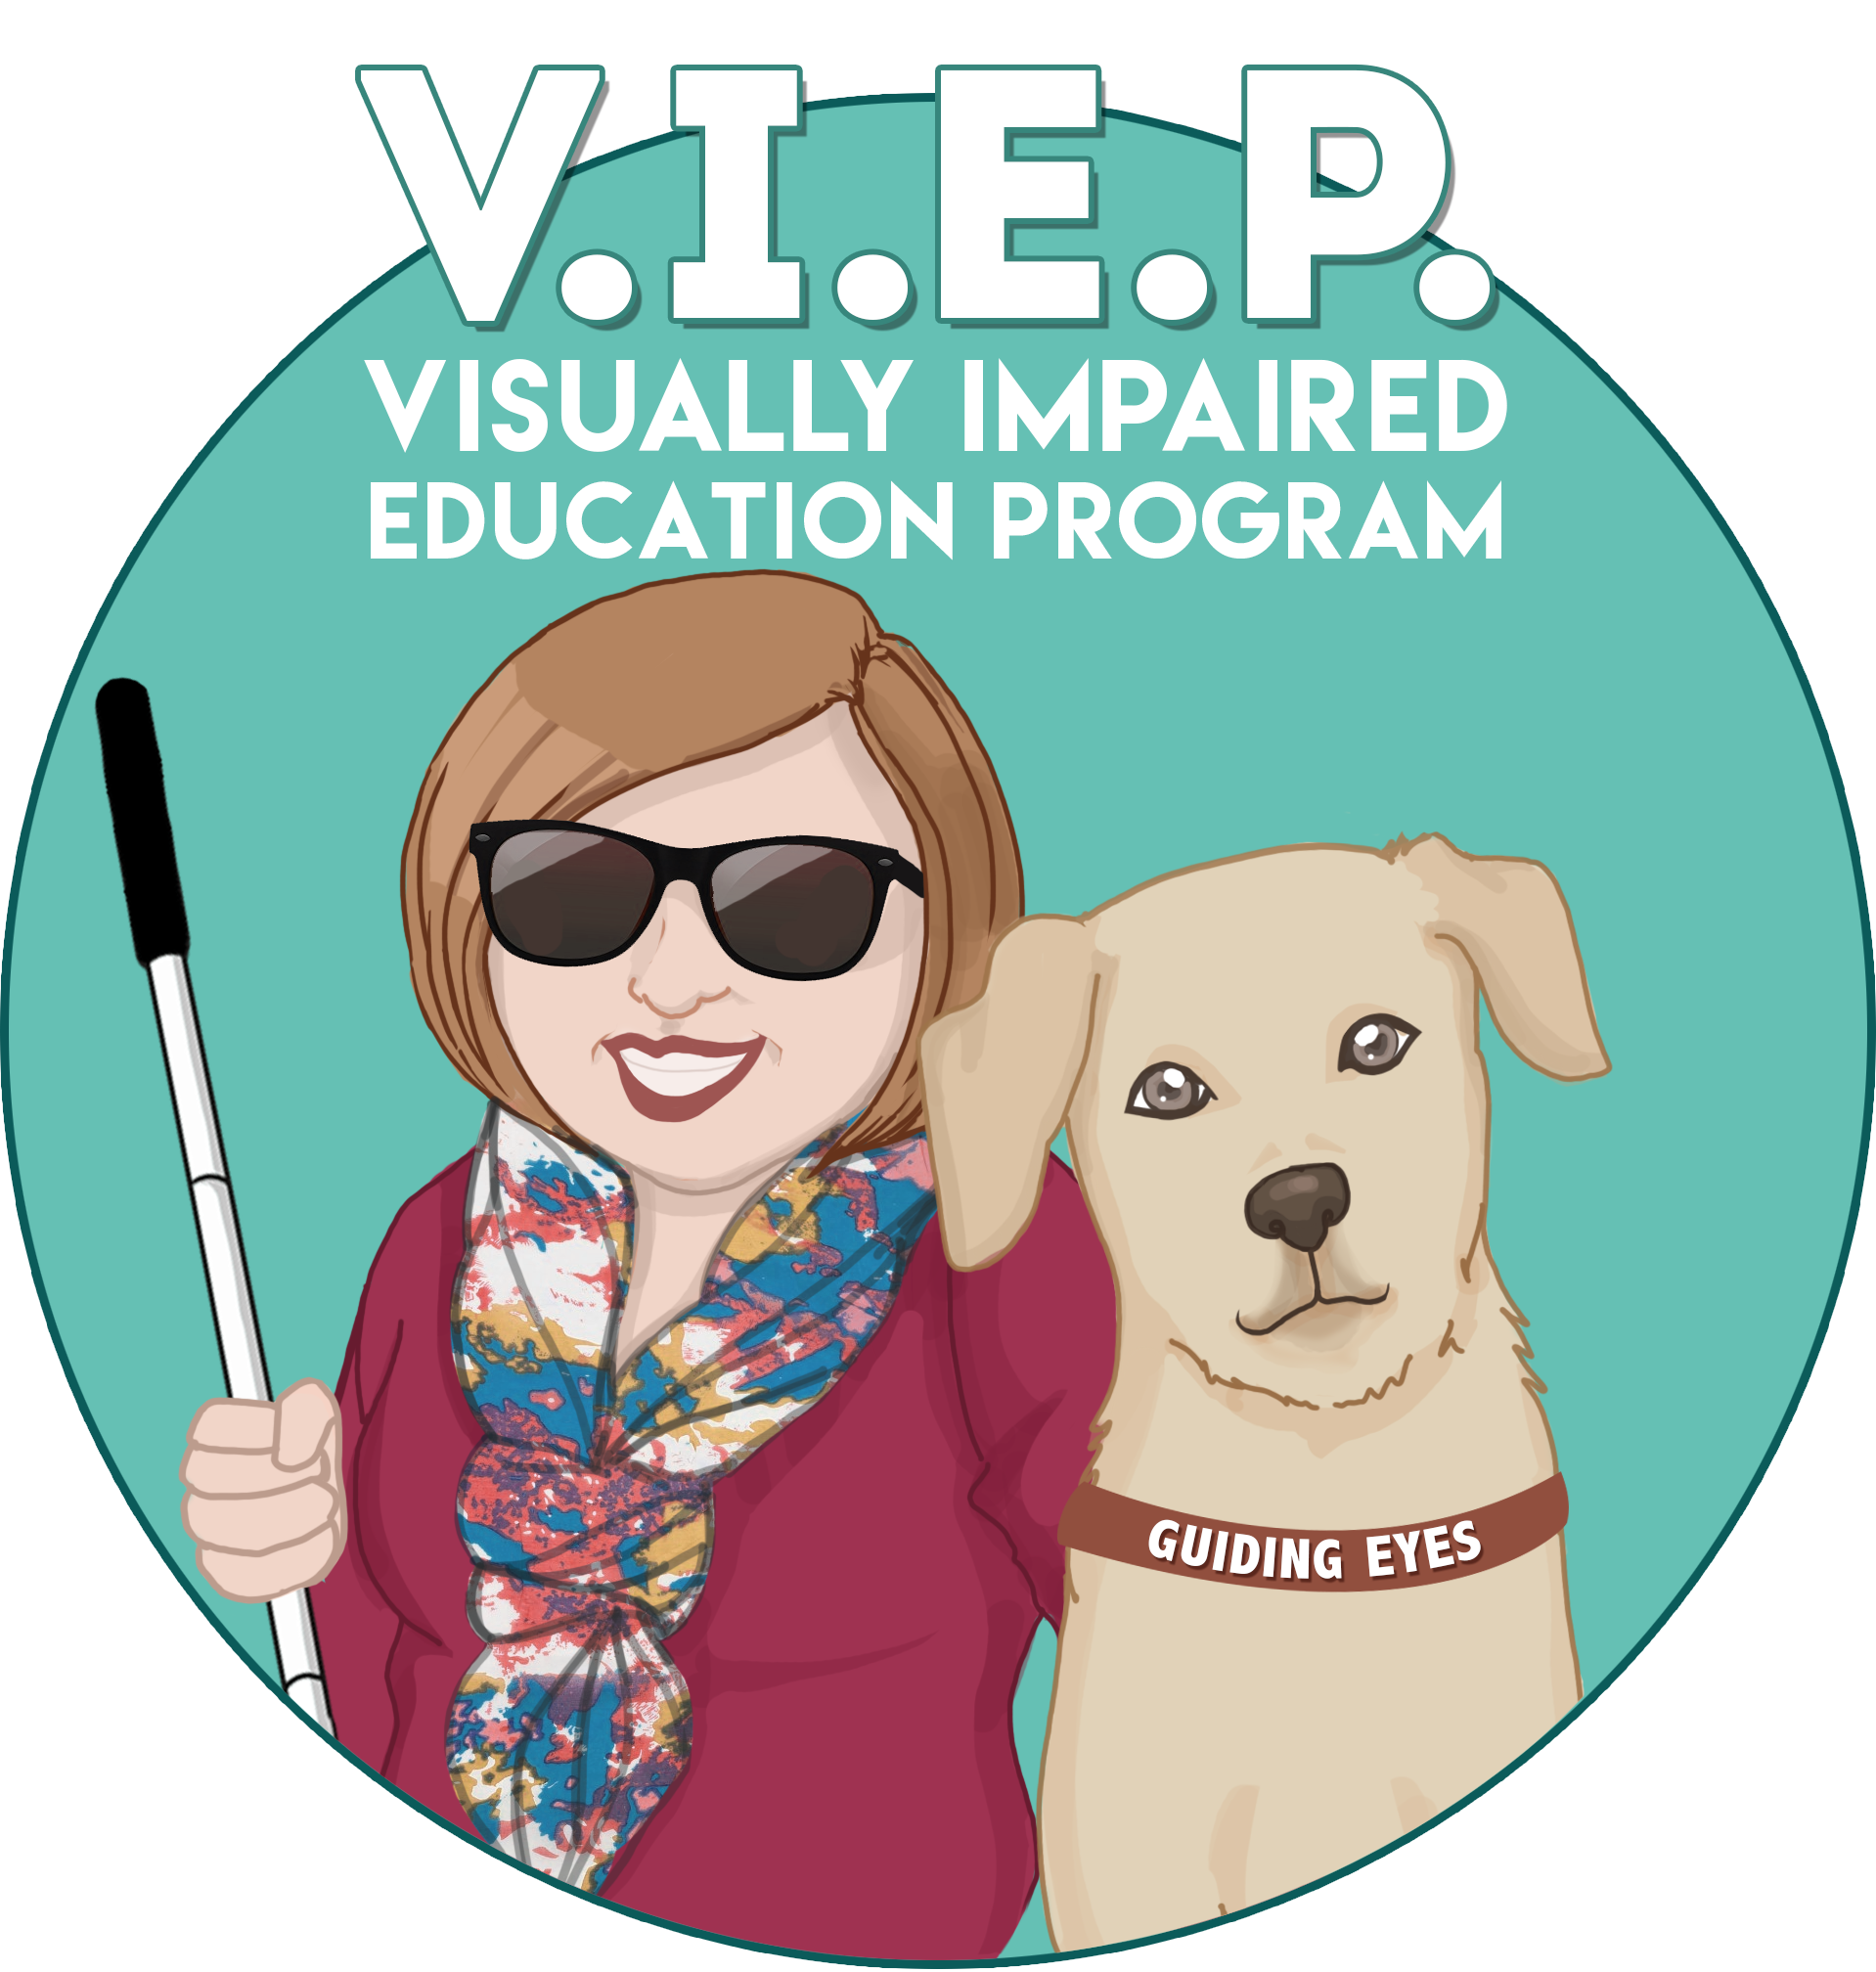 """Graphic: An illustration shows a woman holding a cane standing next to her guide dog wearing a Guiding Eyes collar. Text above reads: """"V.I.E.P. Visually Impaired Education Program."""""""